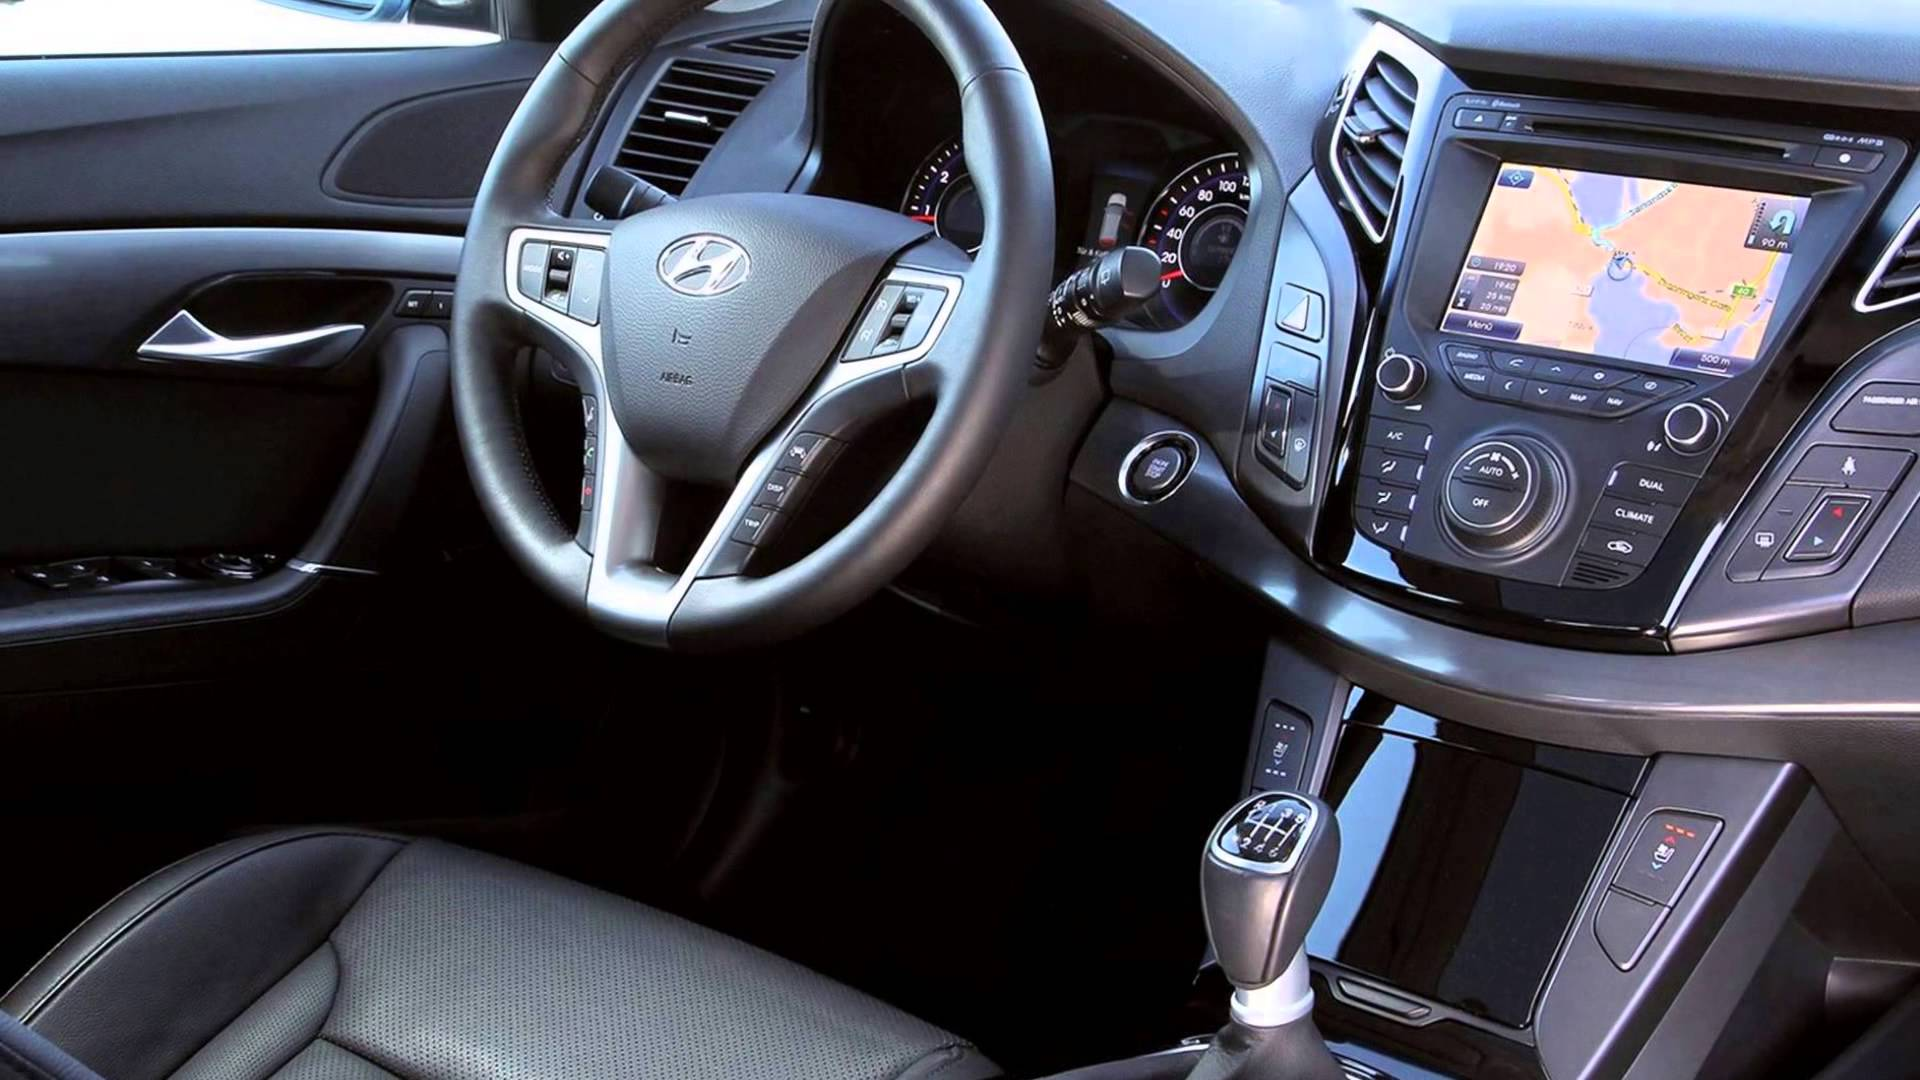 amusing-design-of-the-black-and-silver-steering-wheels-ideas-as-the-peugeot-308-2014-interior-ideas